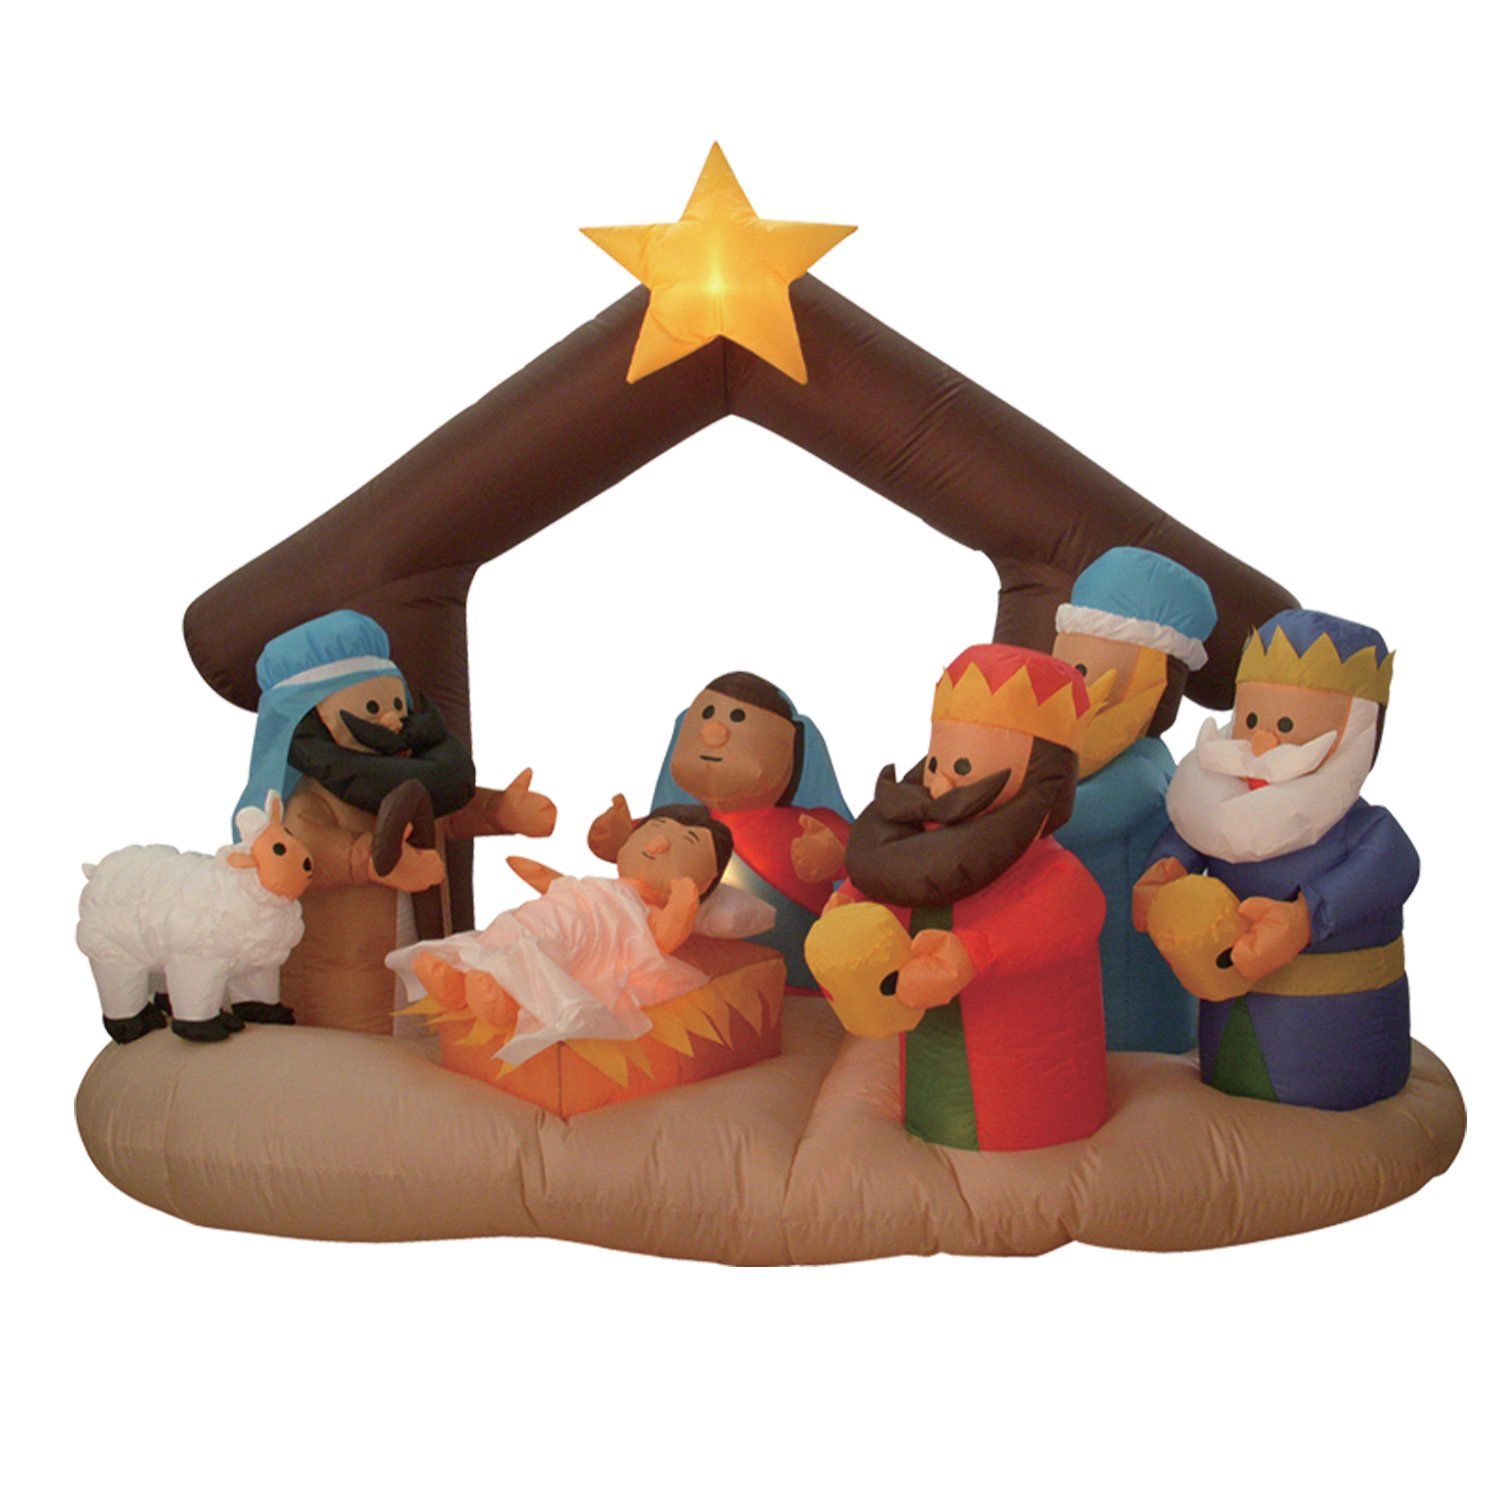 amazoncom 6 foot christmas inflatable nativity scene with three kings party decoration home kitchen - Outdoor Blow Up Christmas Decorations